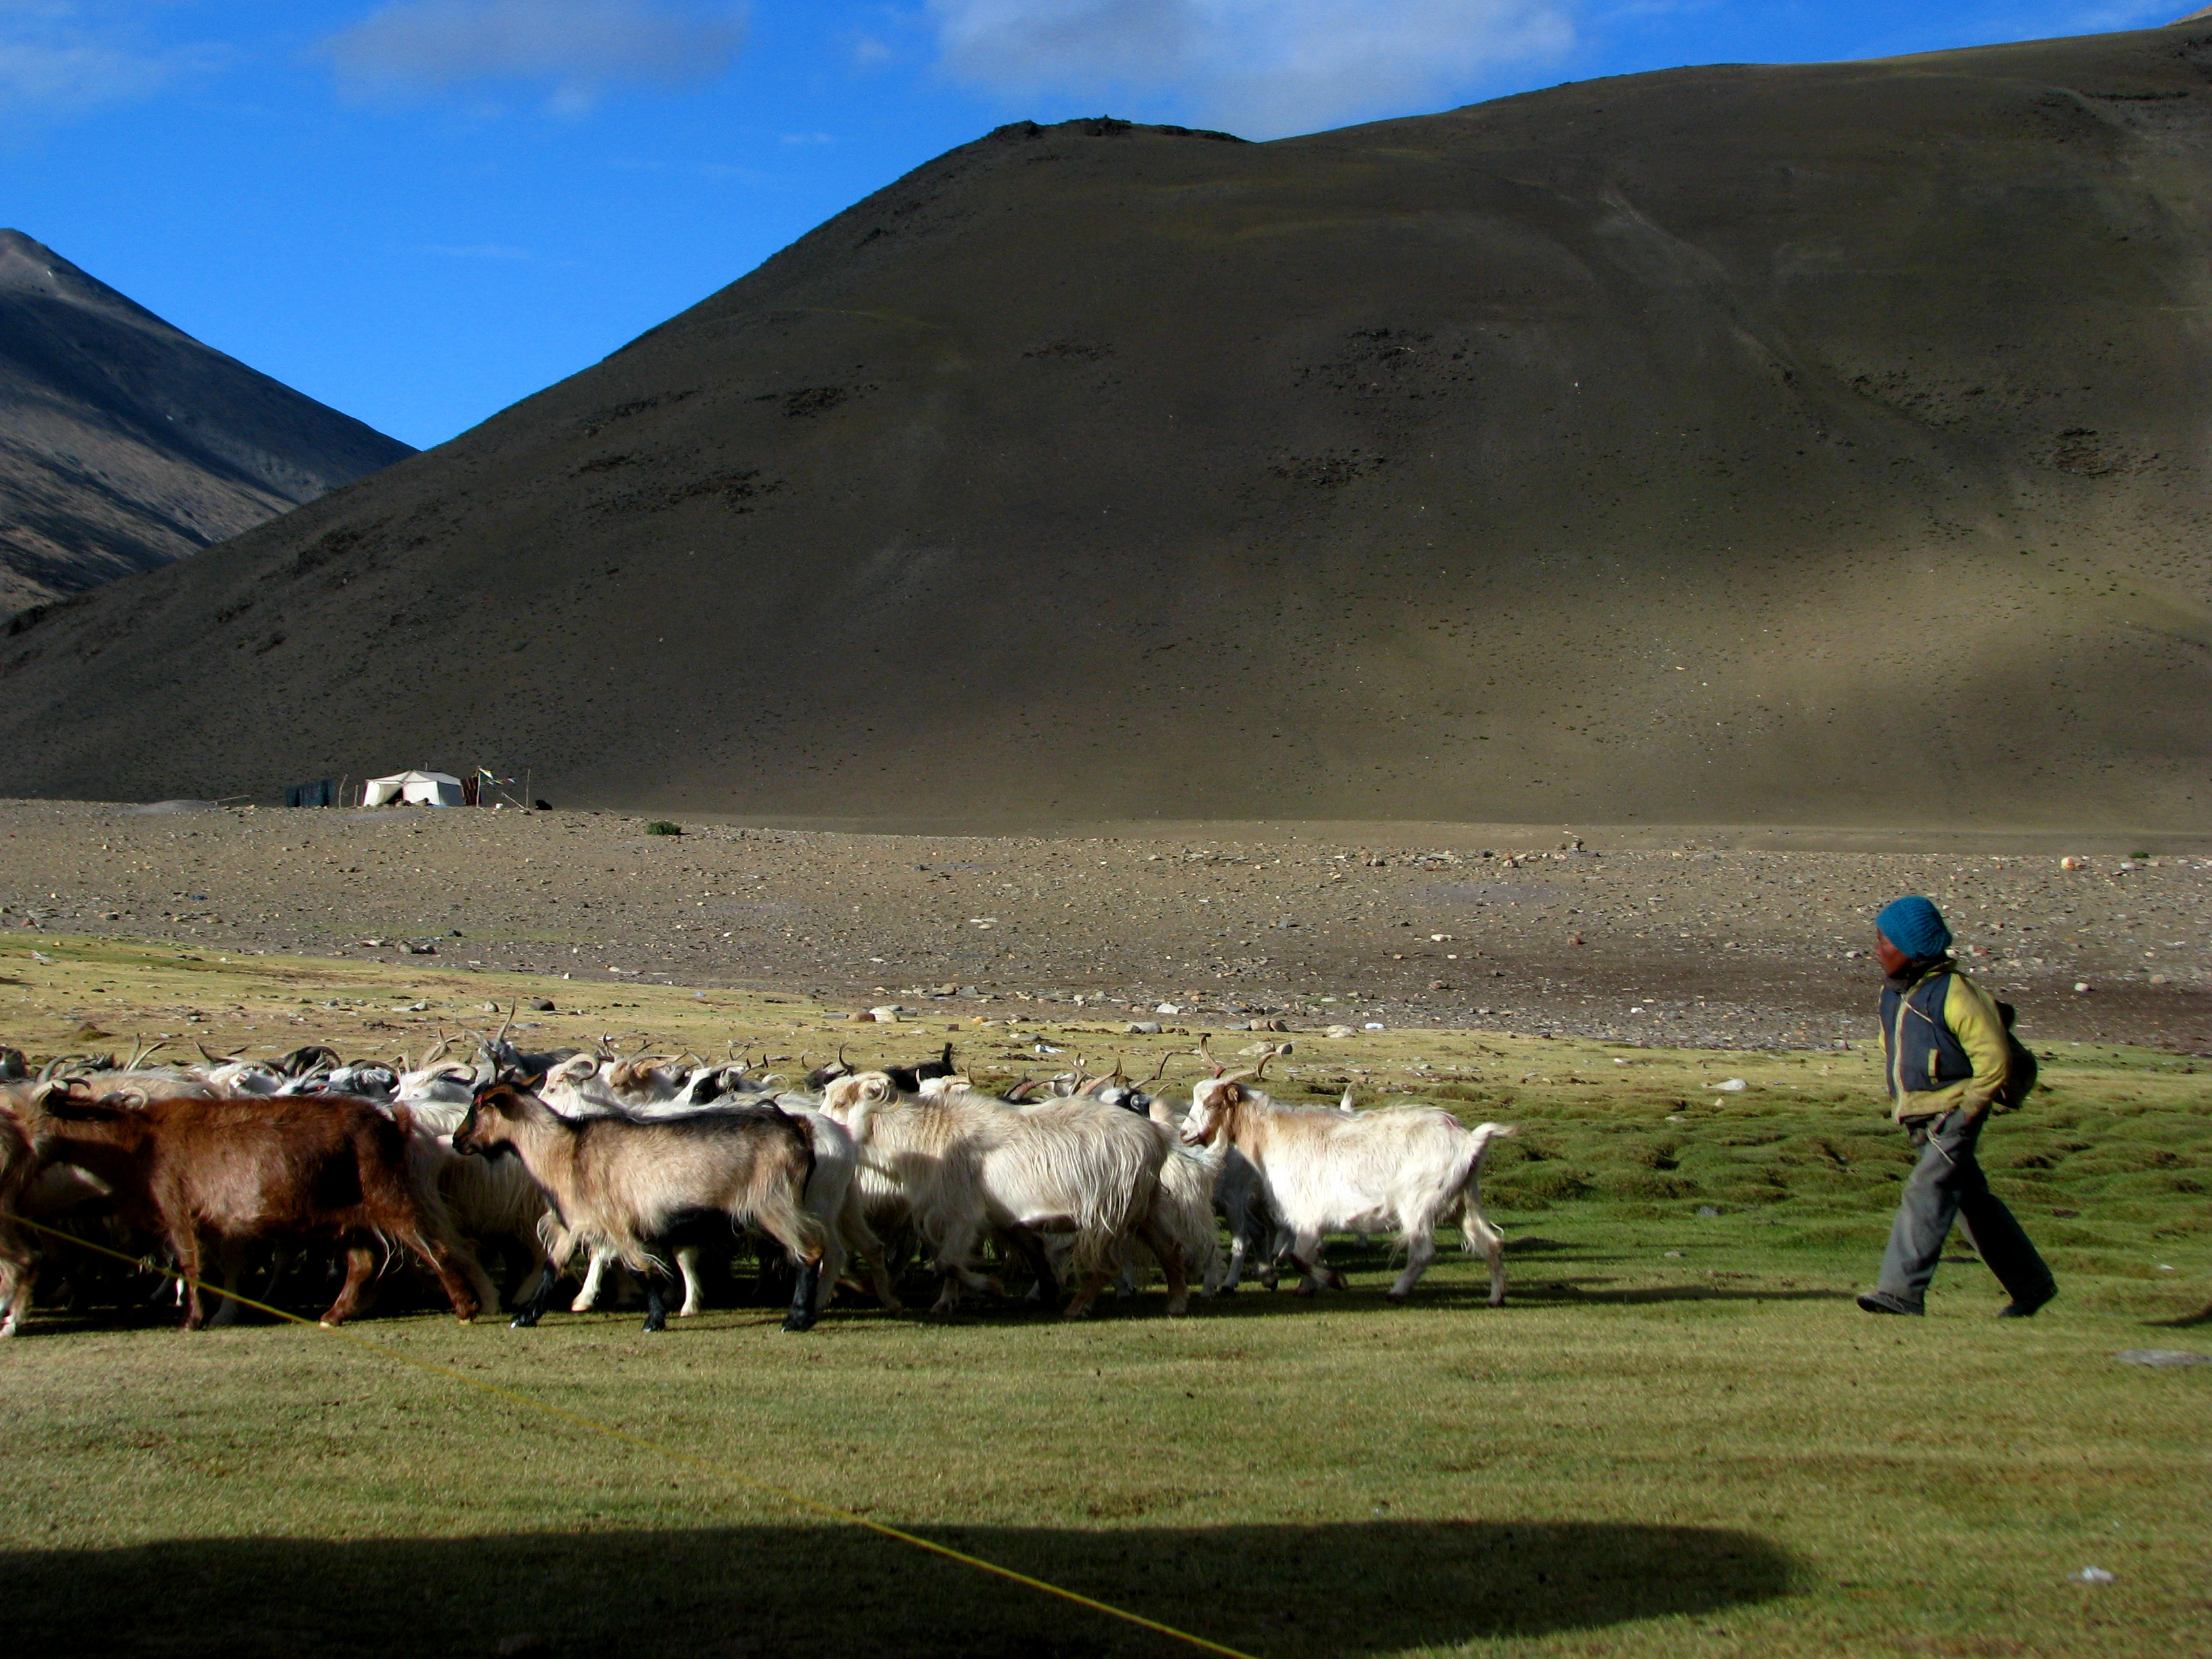 India - Ladakh - Trekking - 077 - sending out the herds in the monring (3896556490)